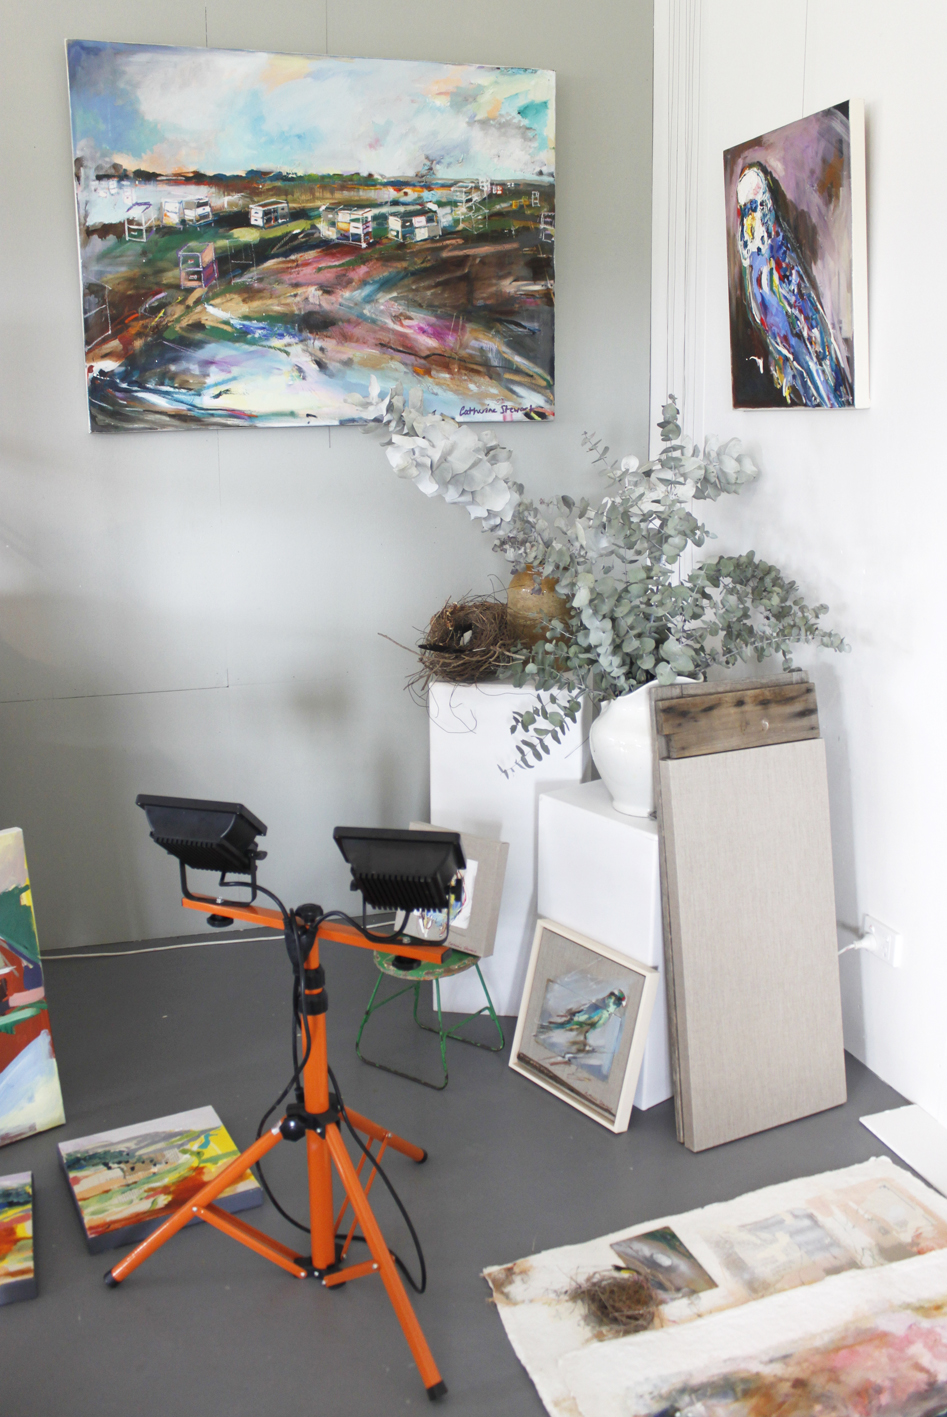 Australian artist studio visit, Catherine Stewart, The Corner Store Gallery, Orange NSW, photographs by Madeline Young